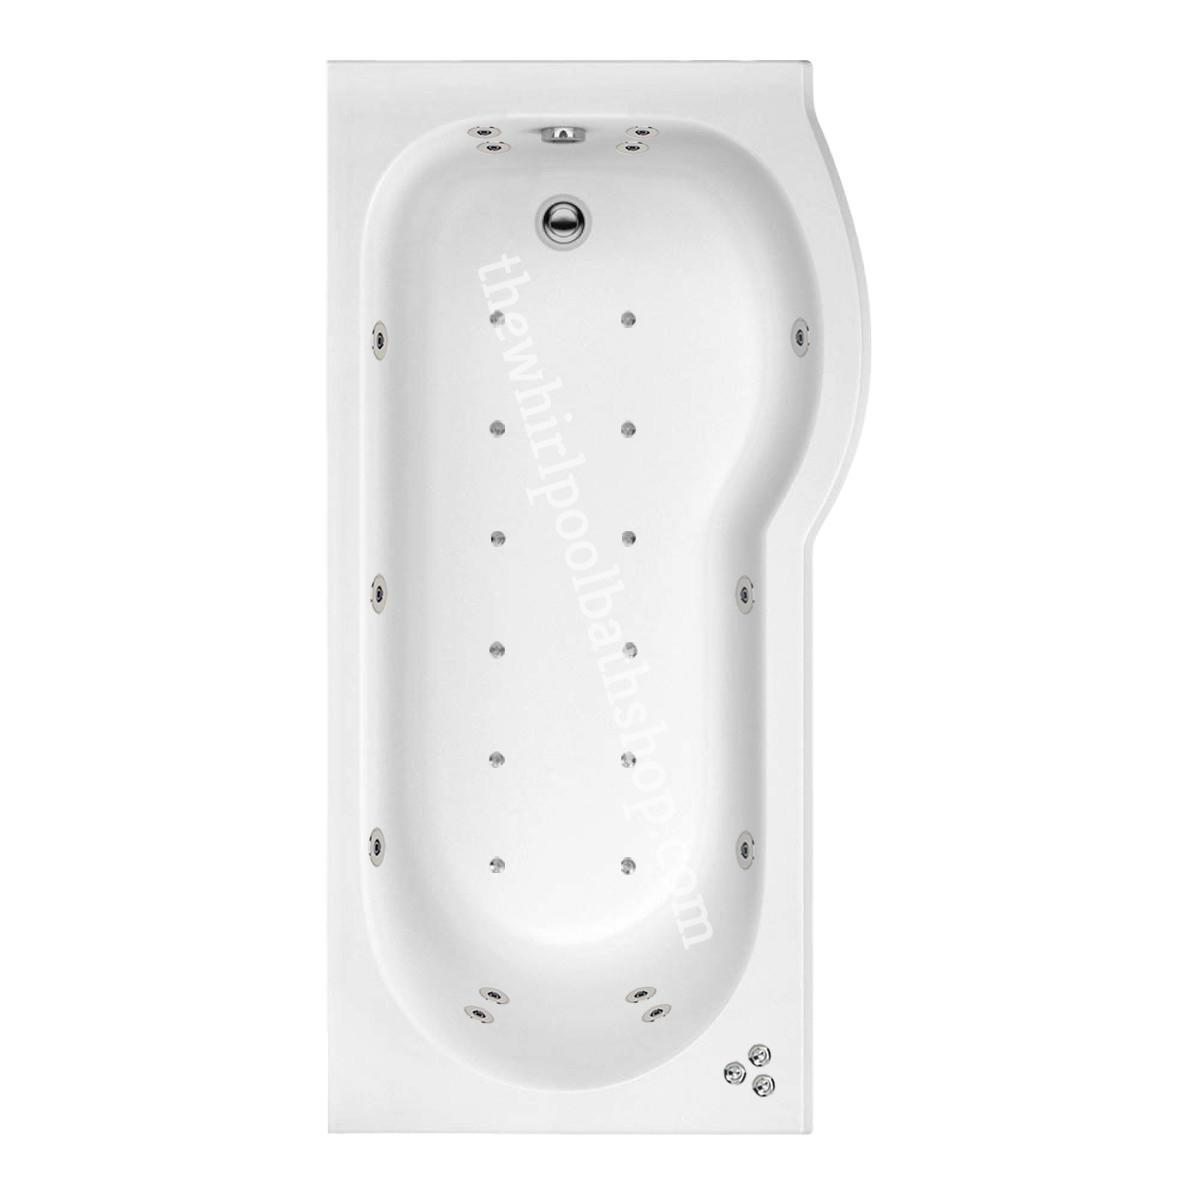 26 jet Trojan Concert 1500 mm Right Hand P Shaped Whirlpool Shower Bath